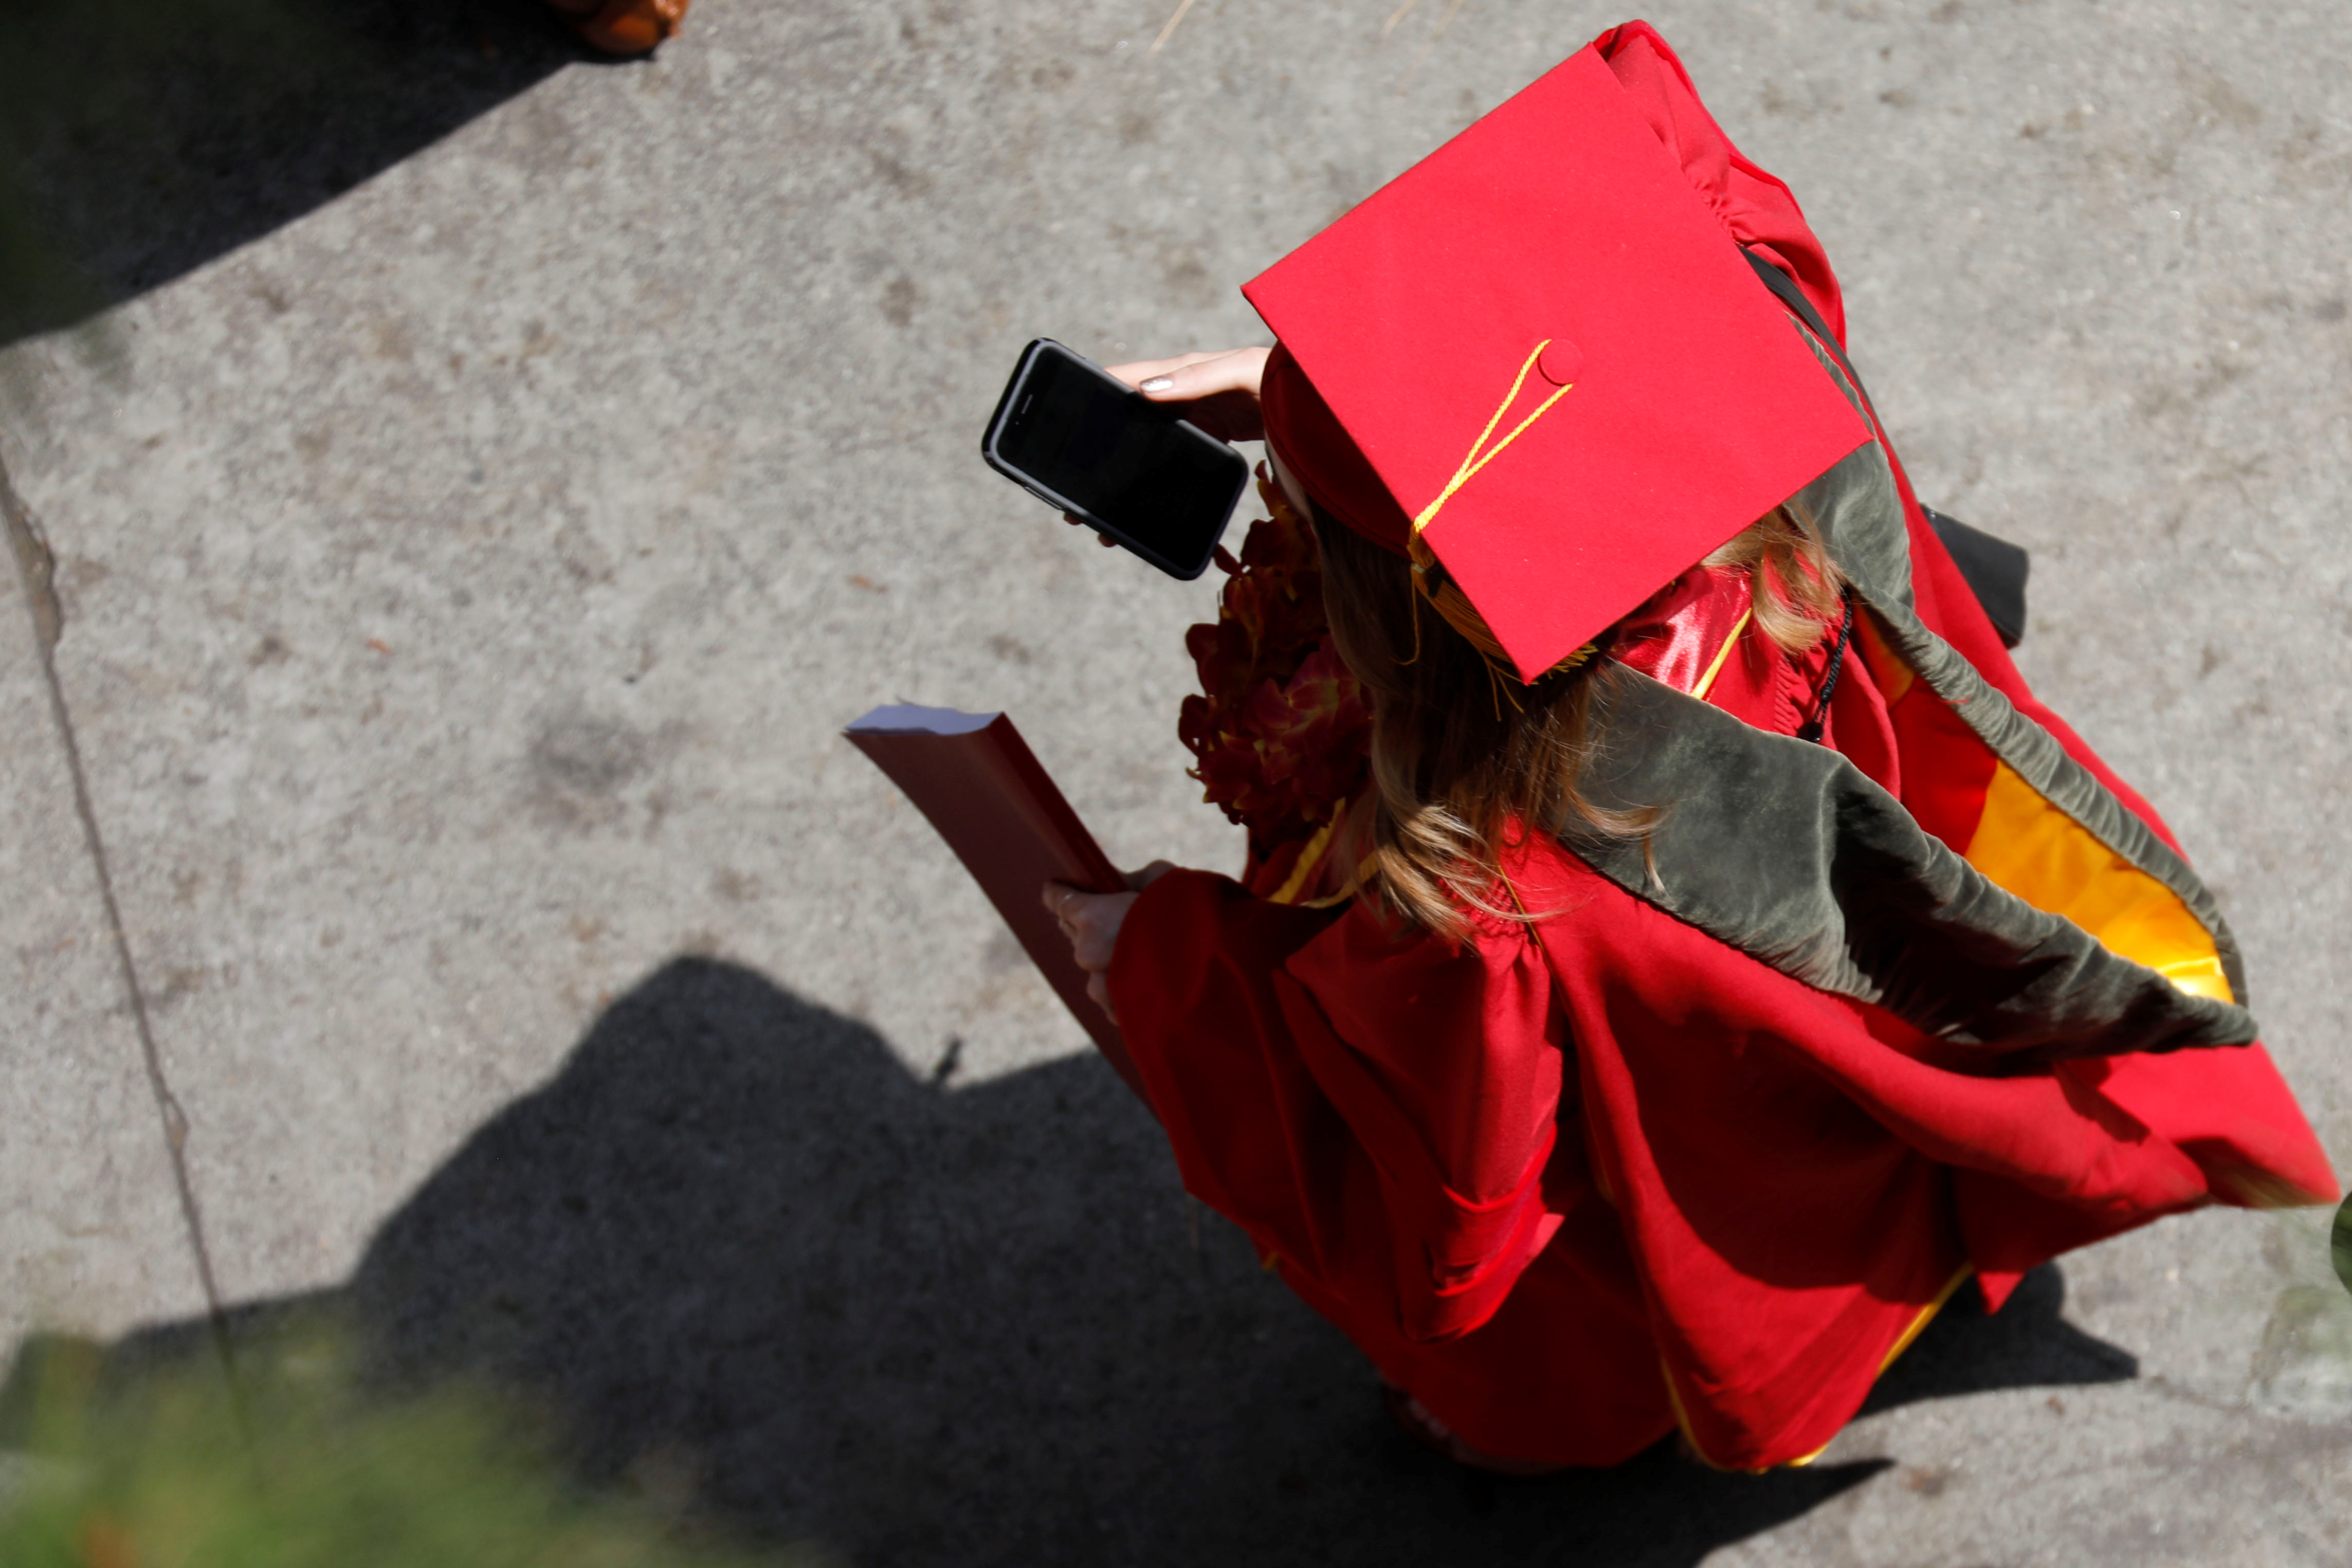 A graduate uses a cell phone after a commencement ceremony.